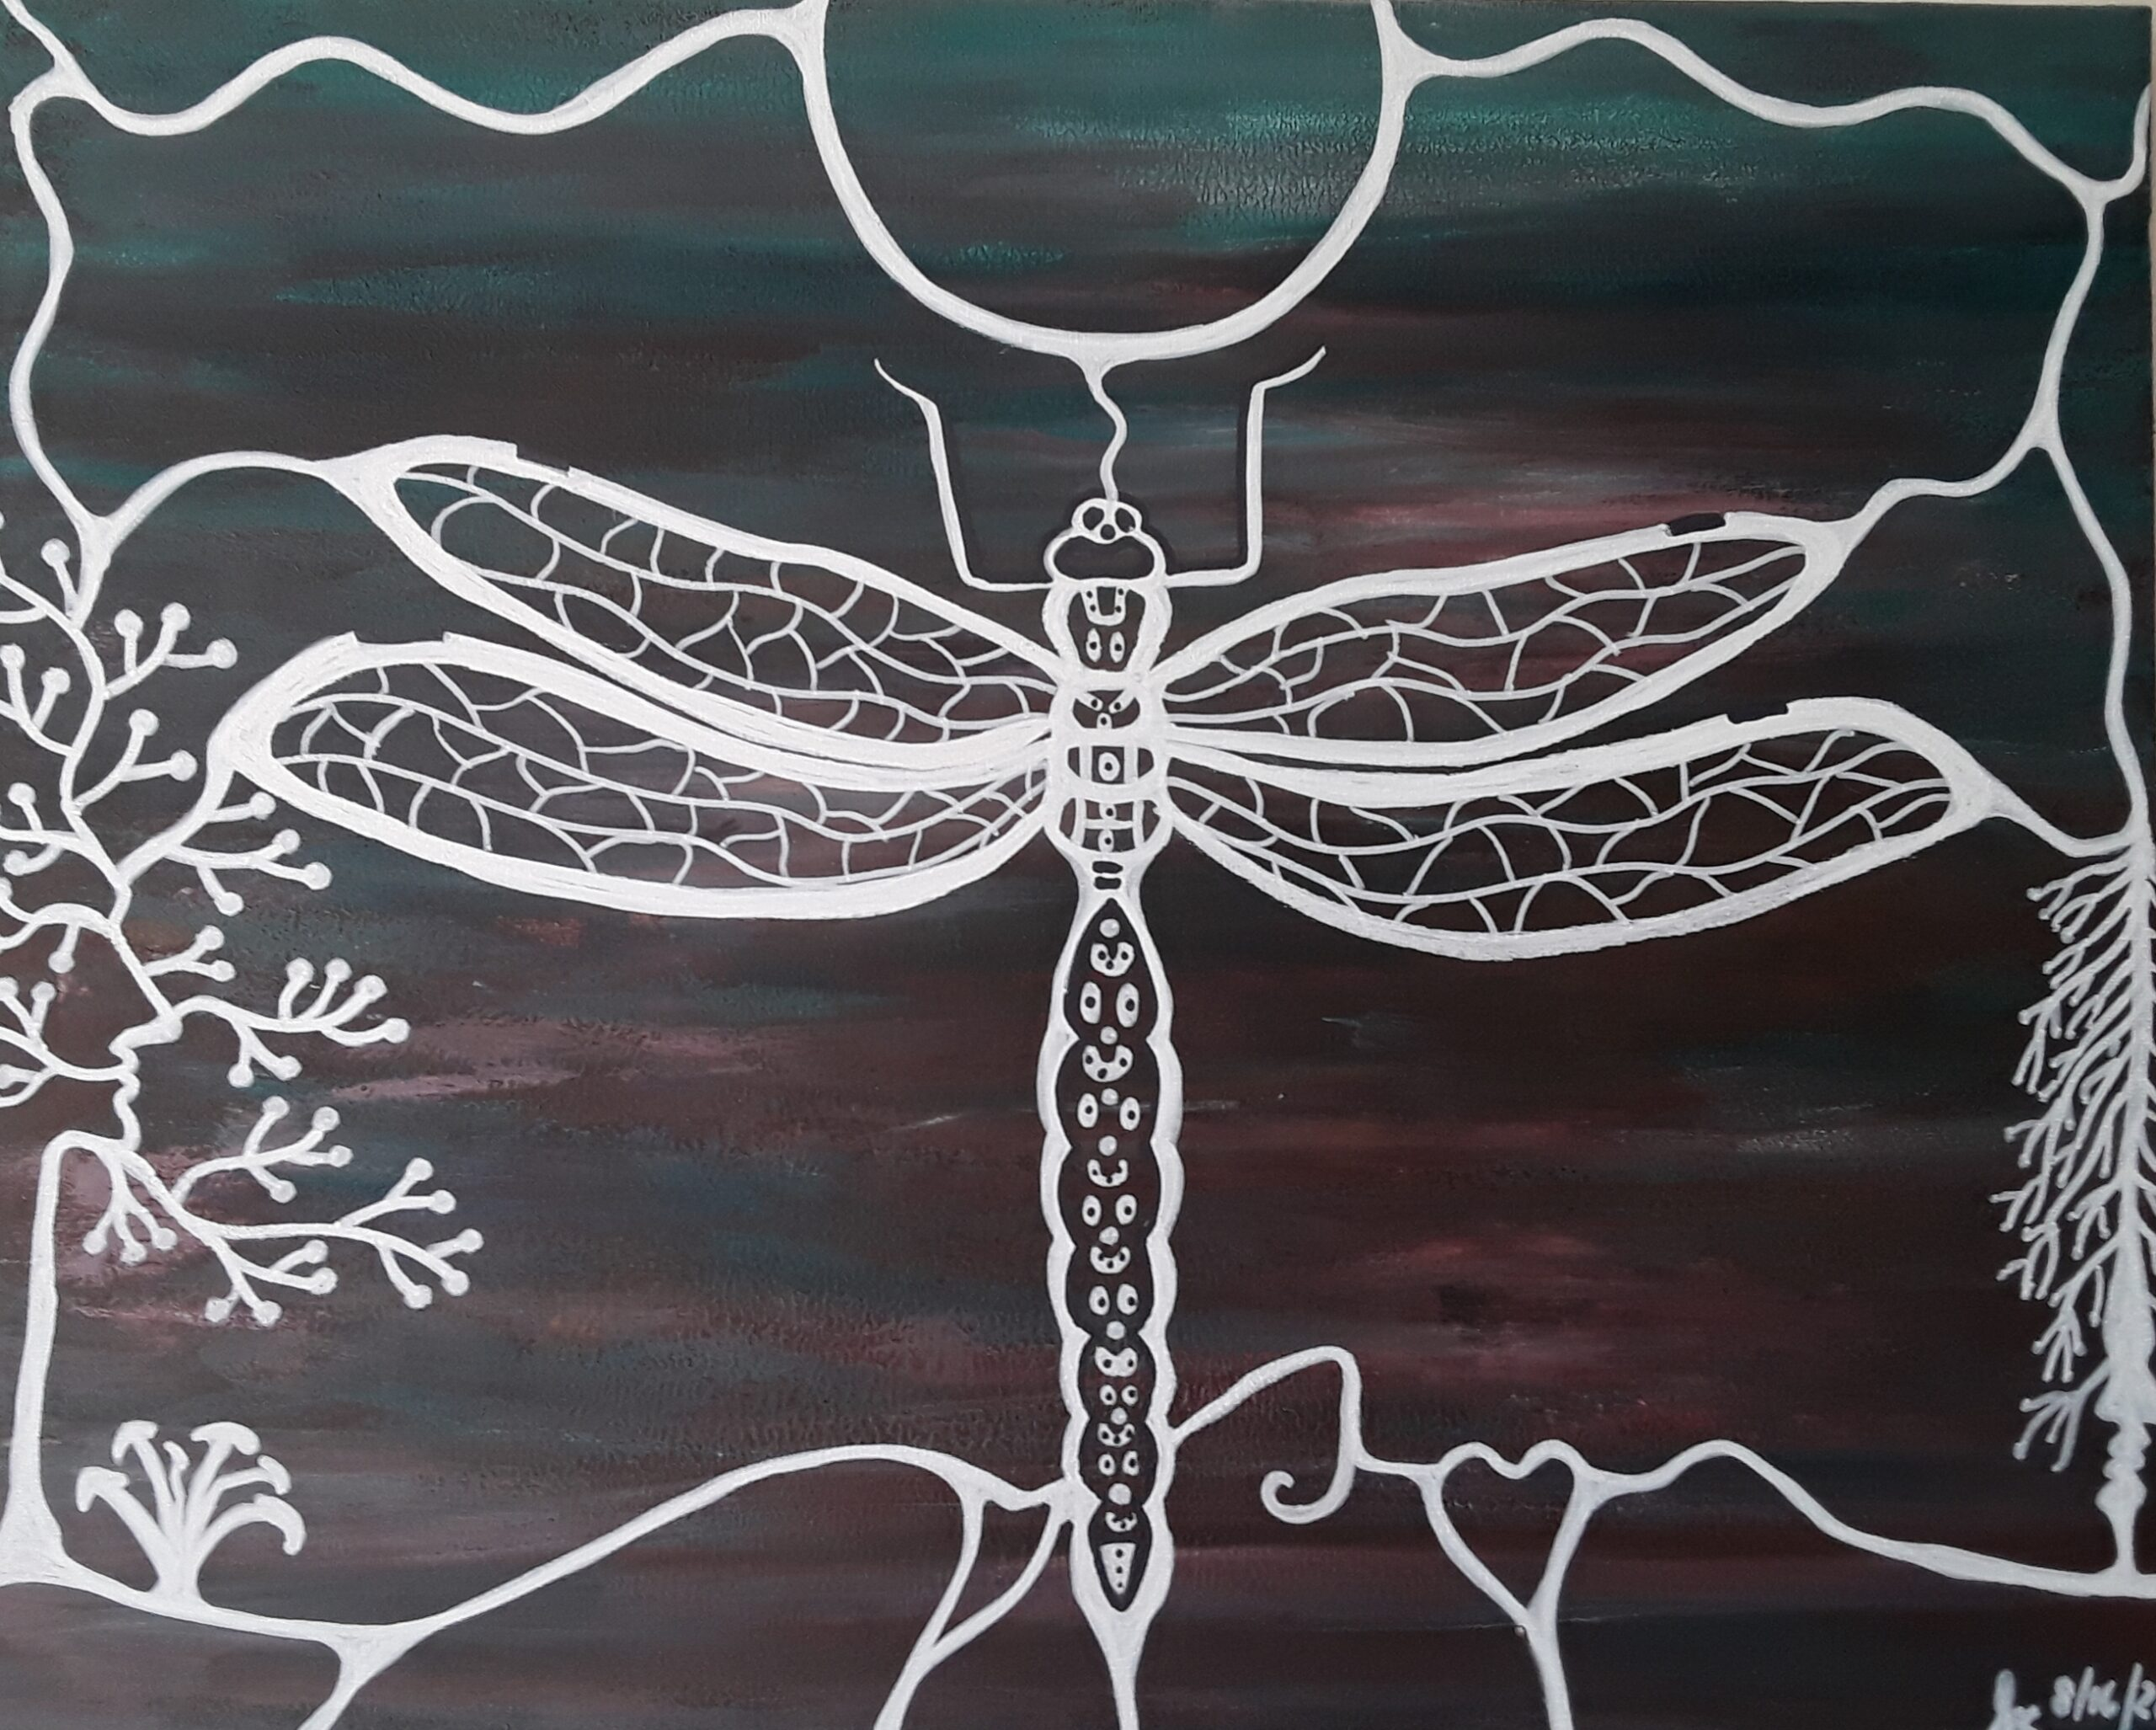 Painting of a dragonfly by Sherry Crawford.